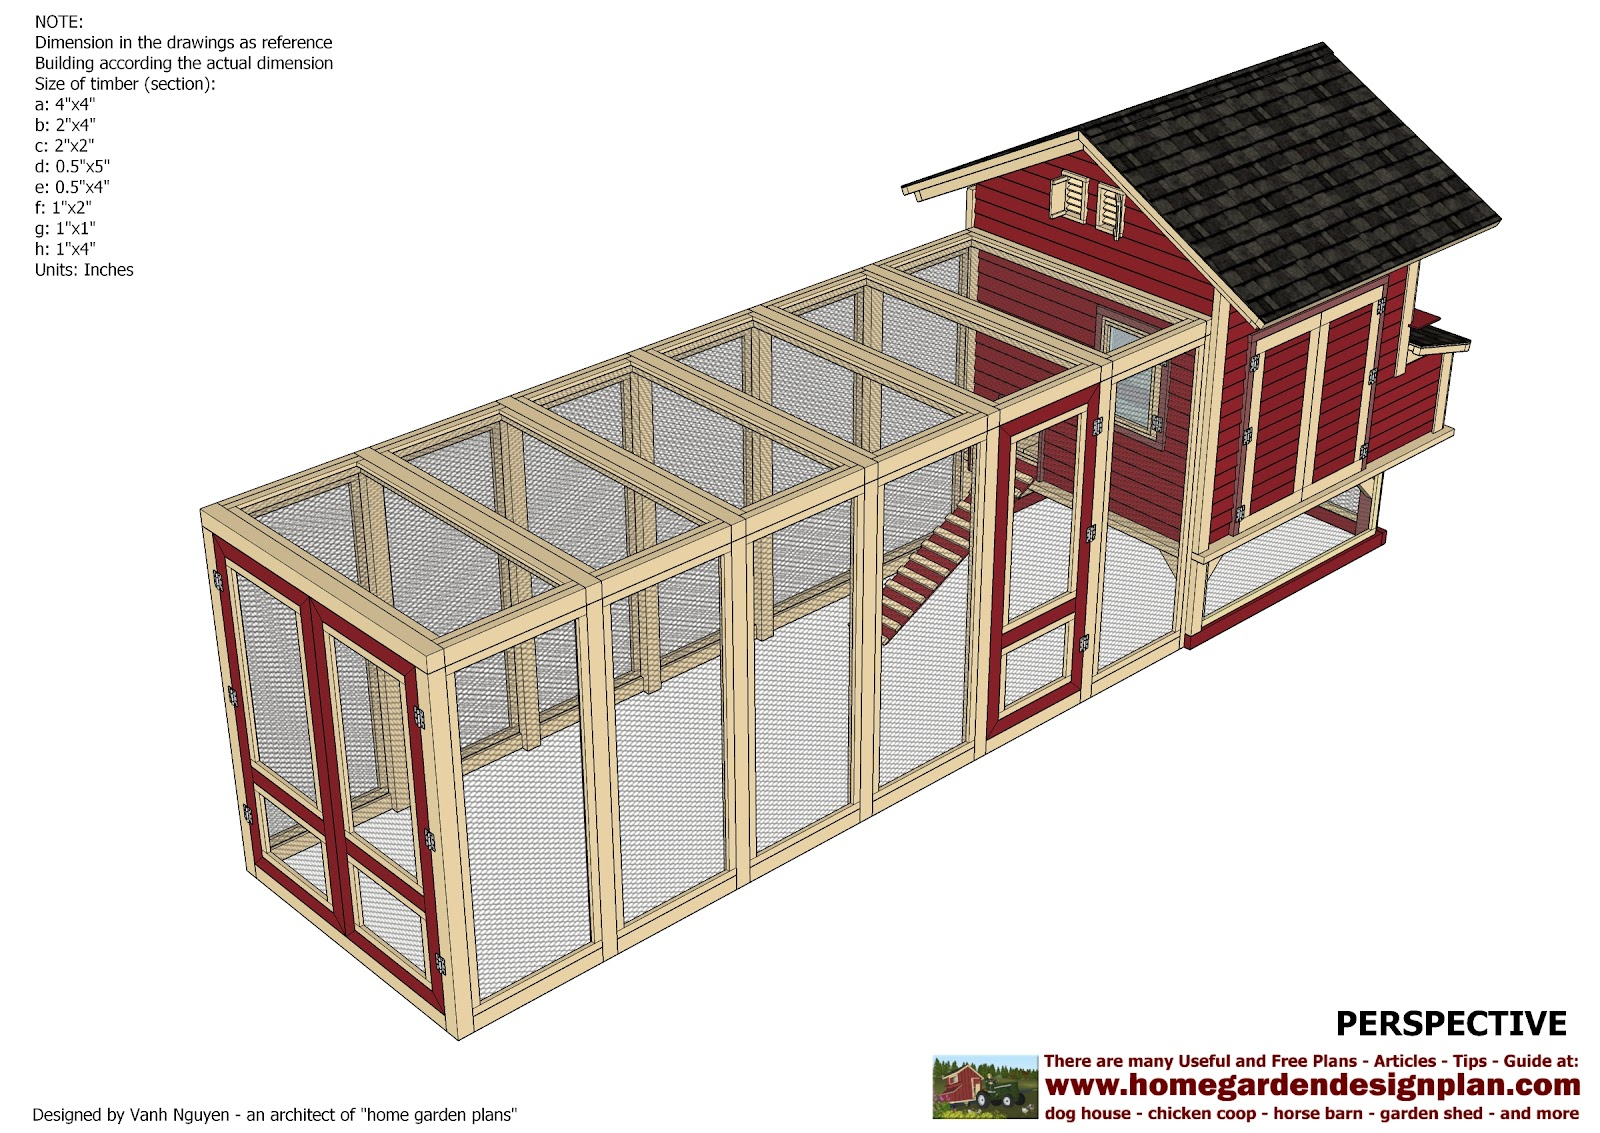 Home garden plans l102 chicken coop plans construction for Plans for a chicken coop for 12 chickens